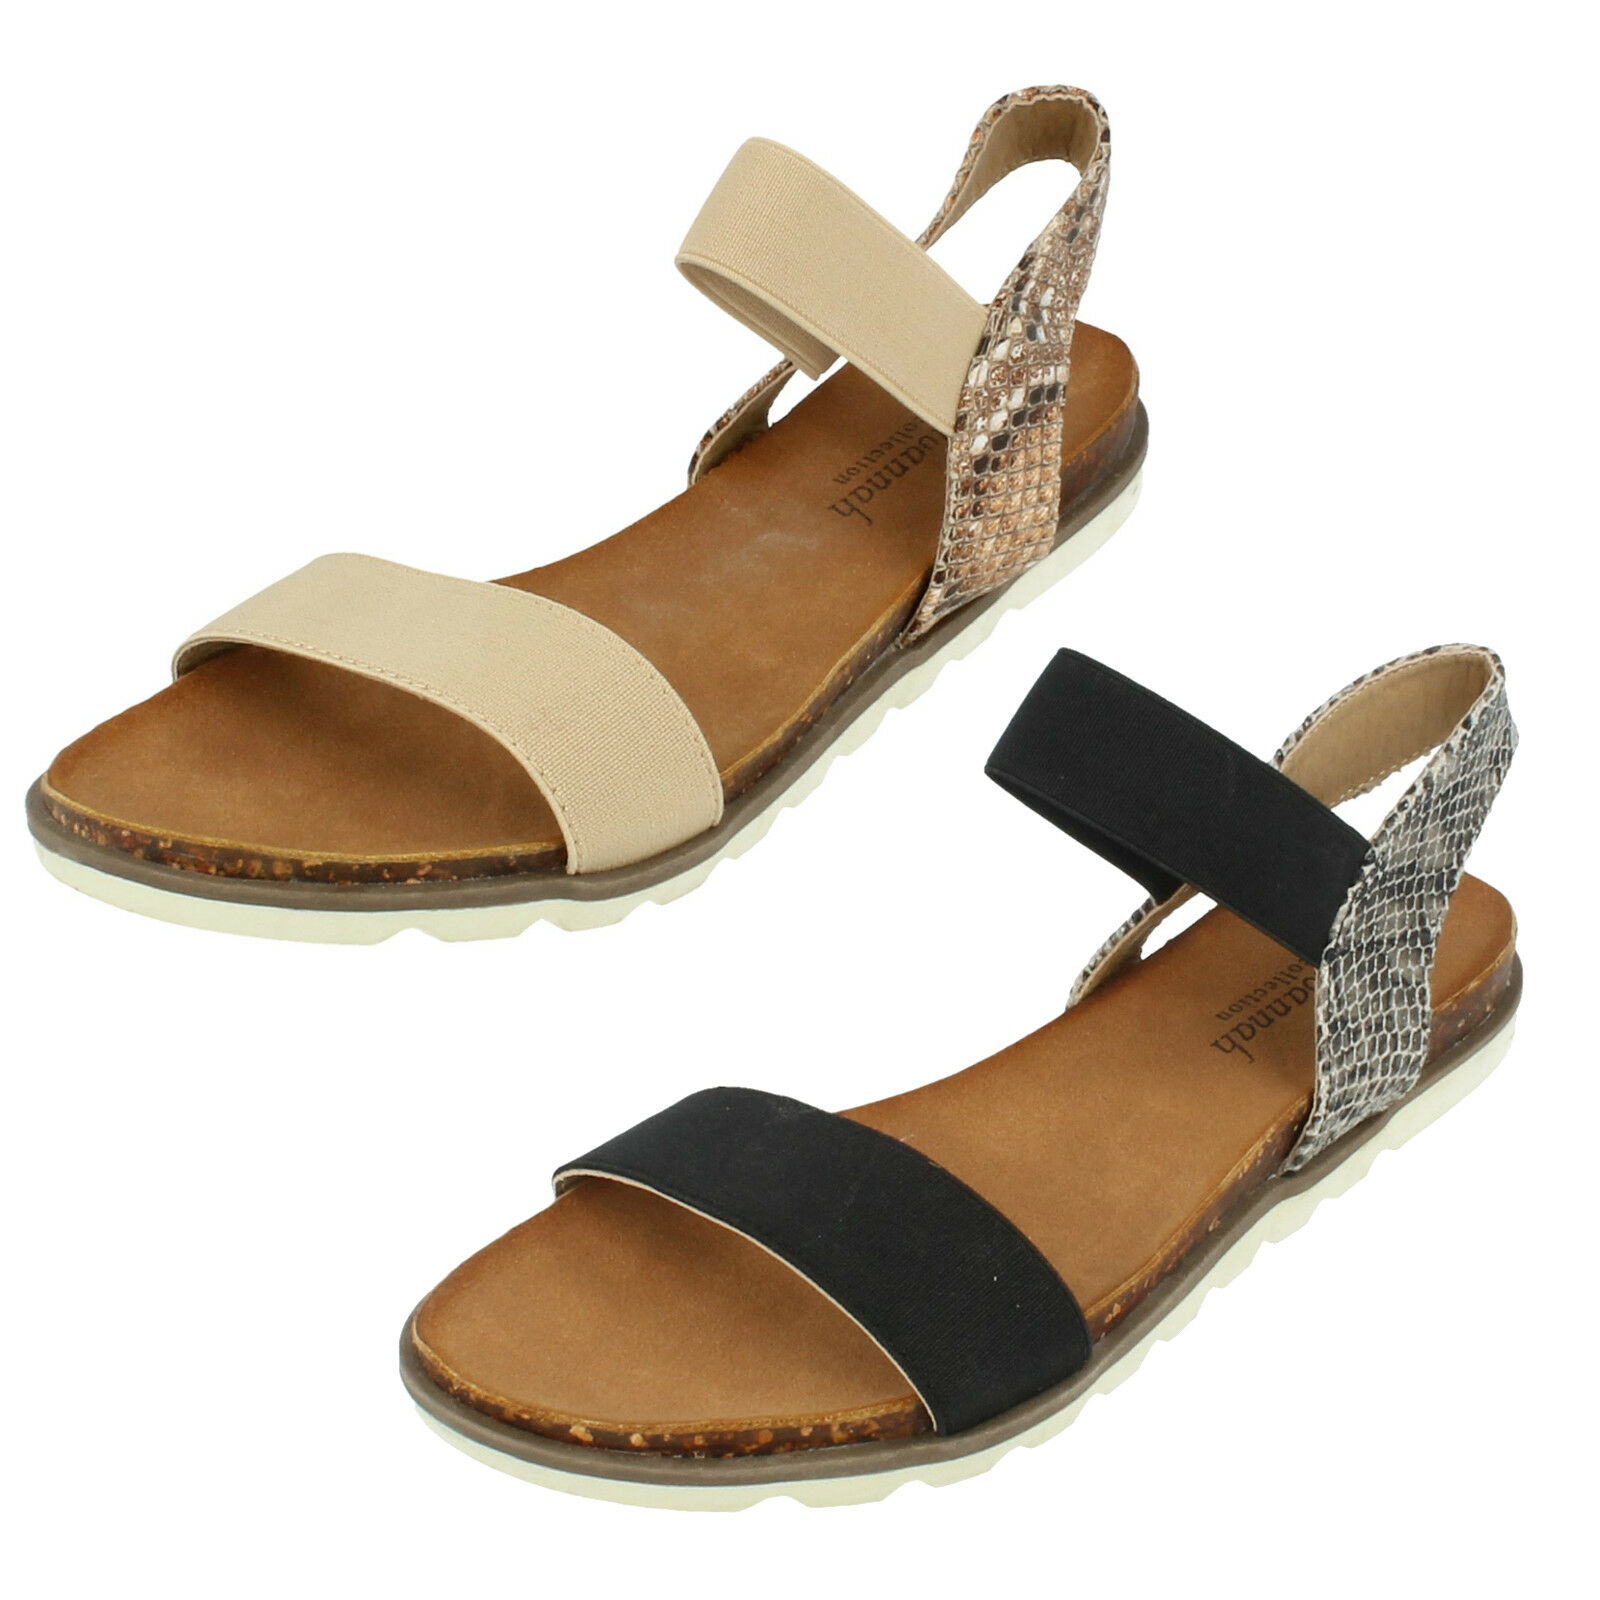 SALE Ladies By F0872 Open toe Sandal By Ladies Savannah Collection WAS NOW 808340